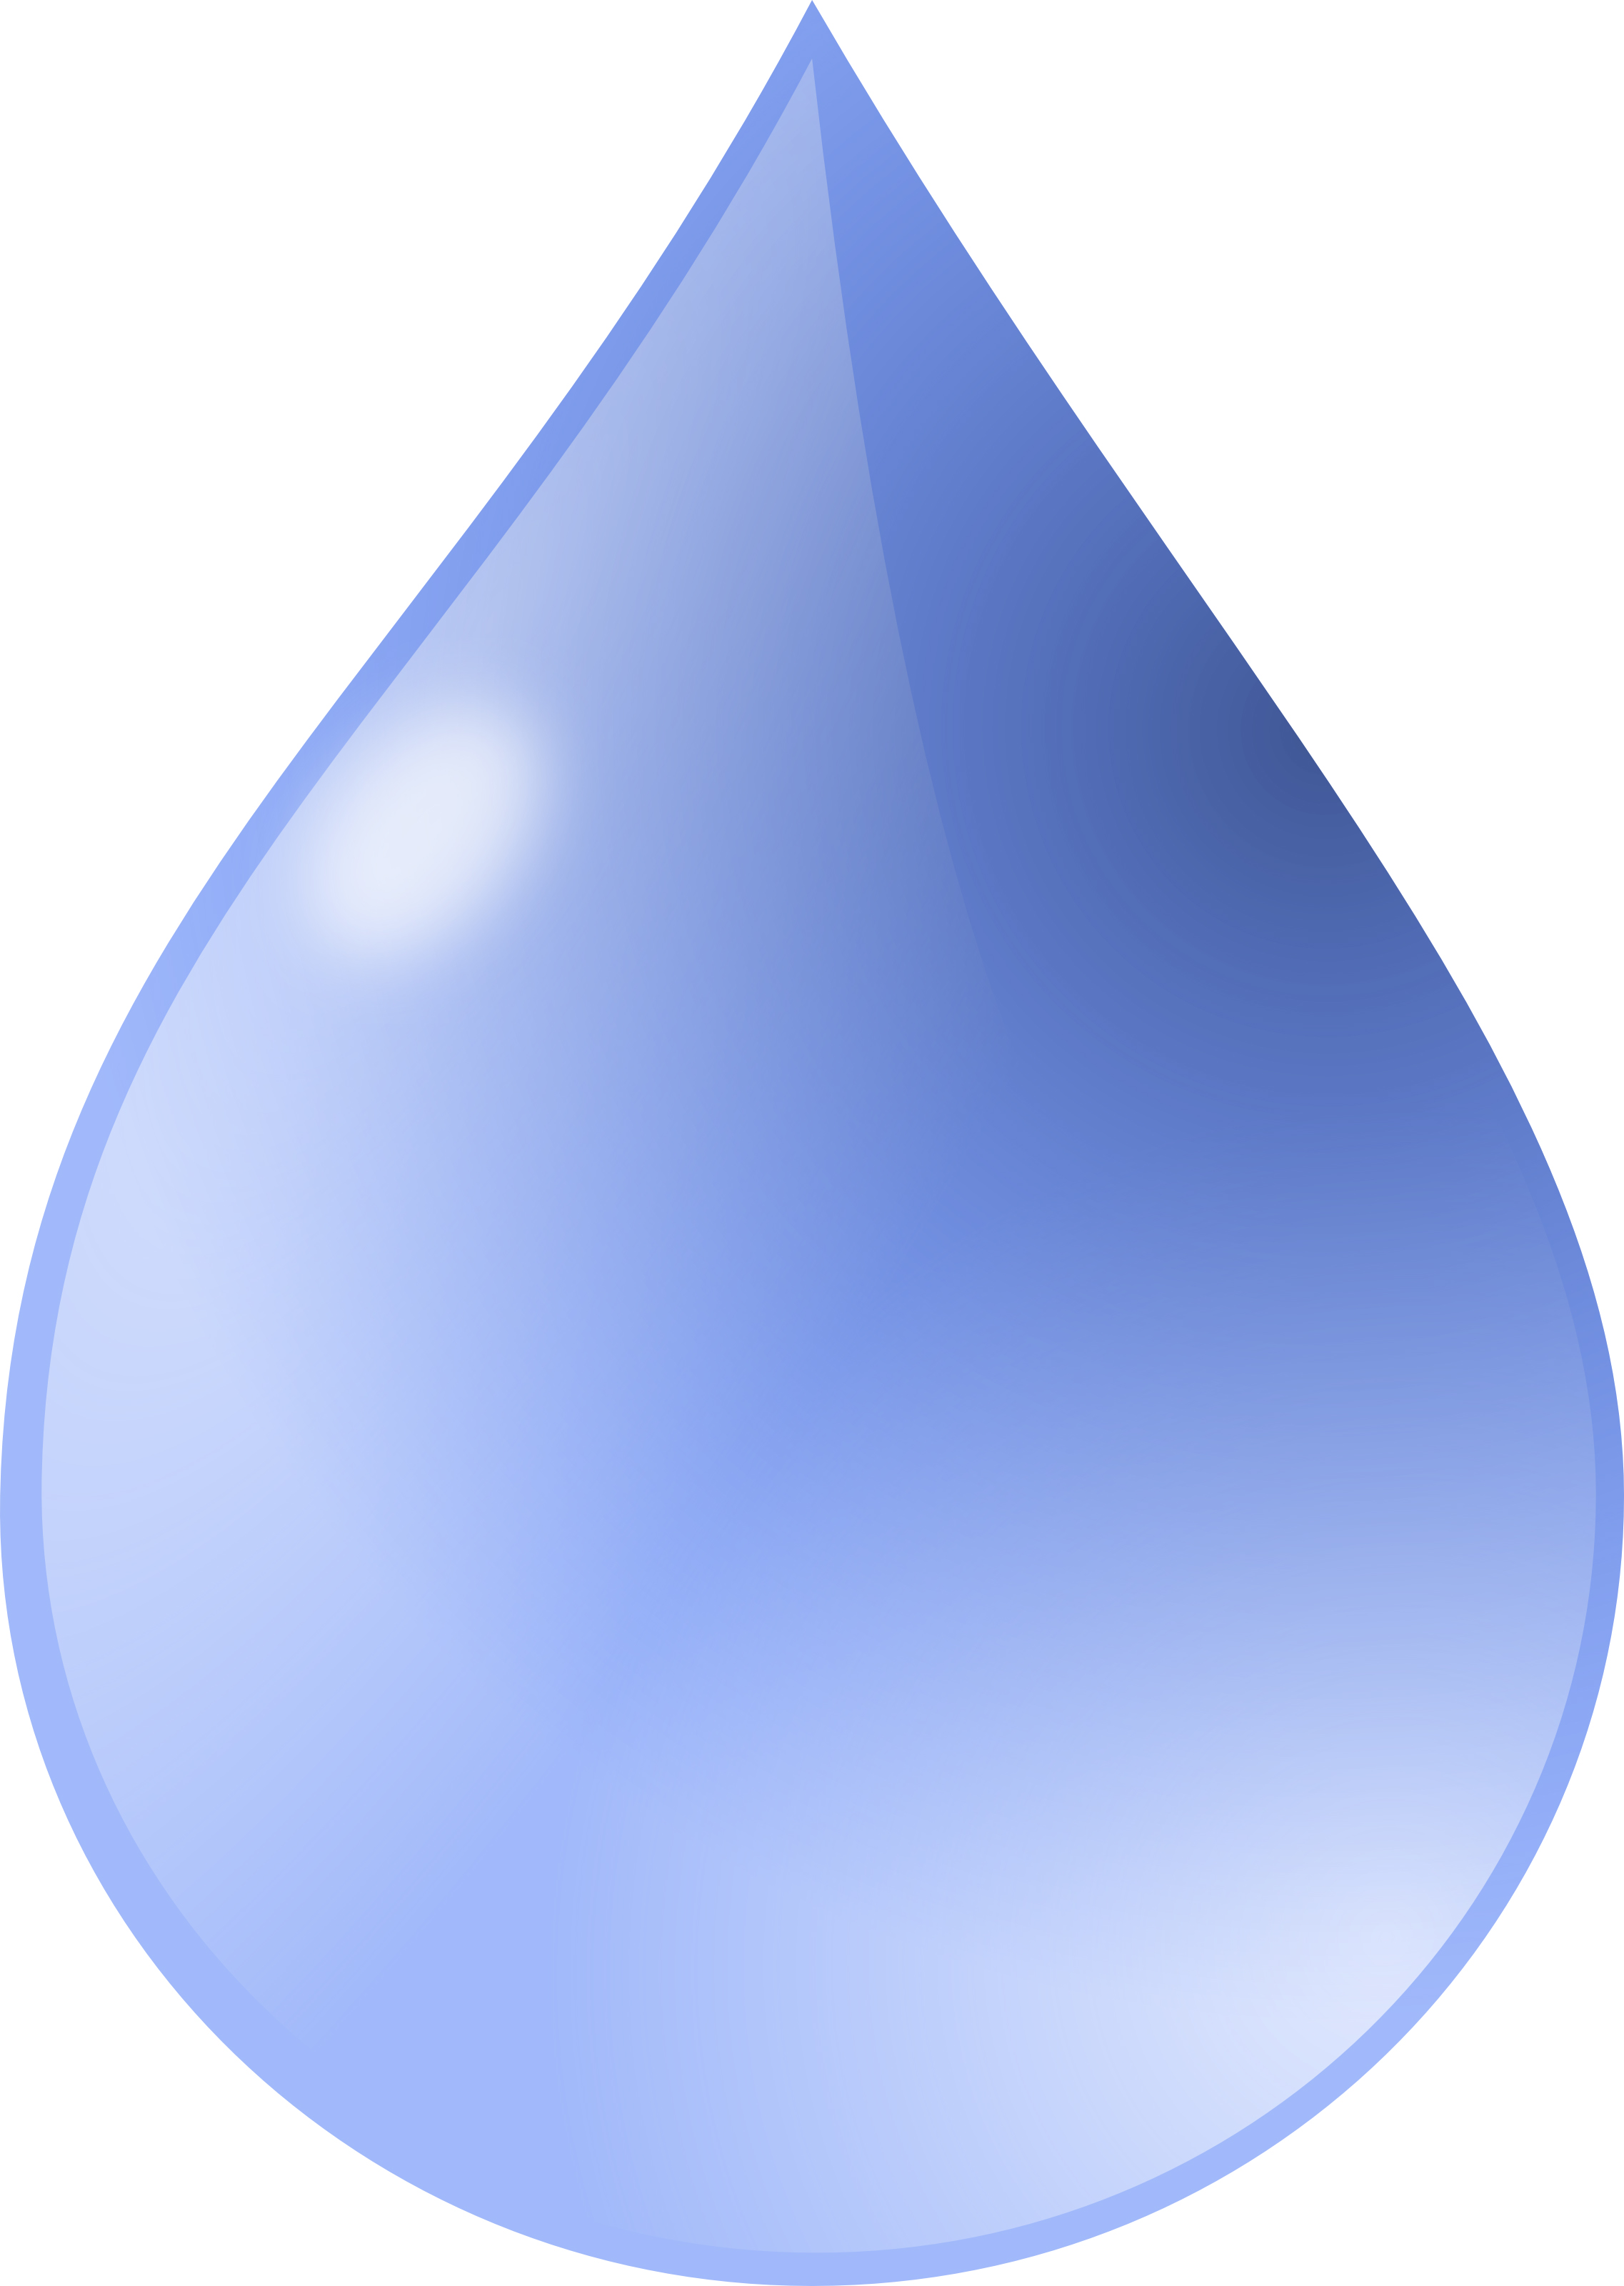 Clipart Of A Drop Of Water.